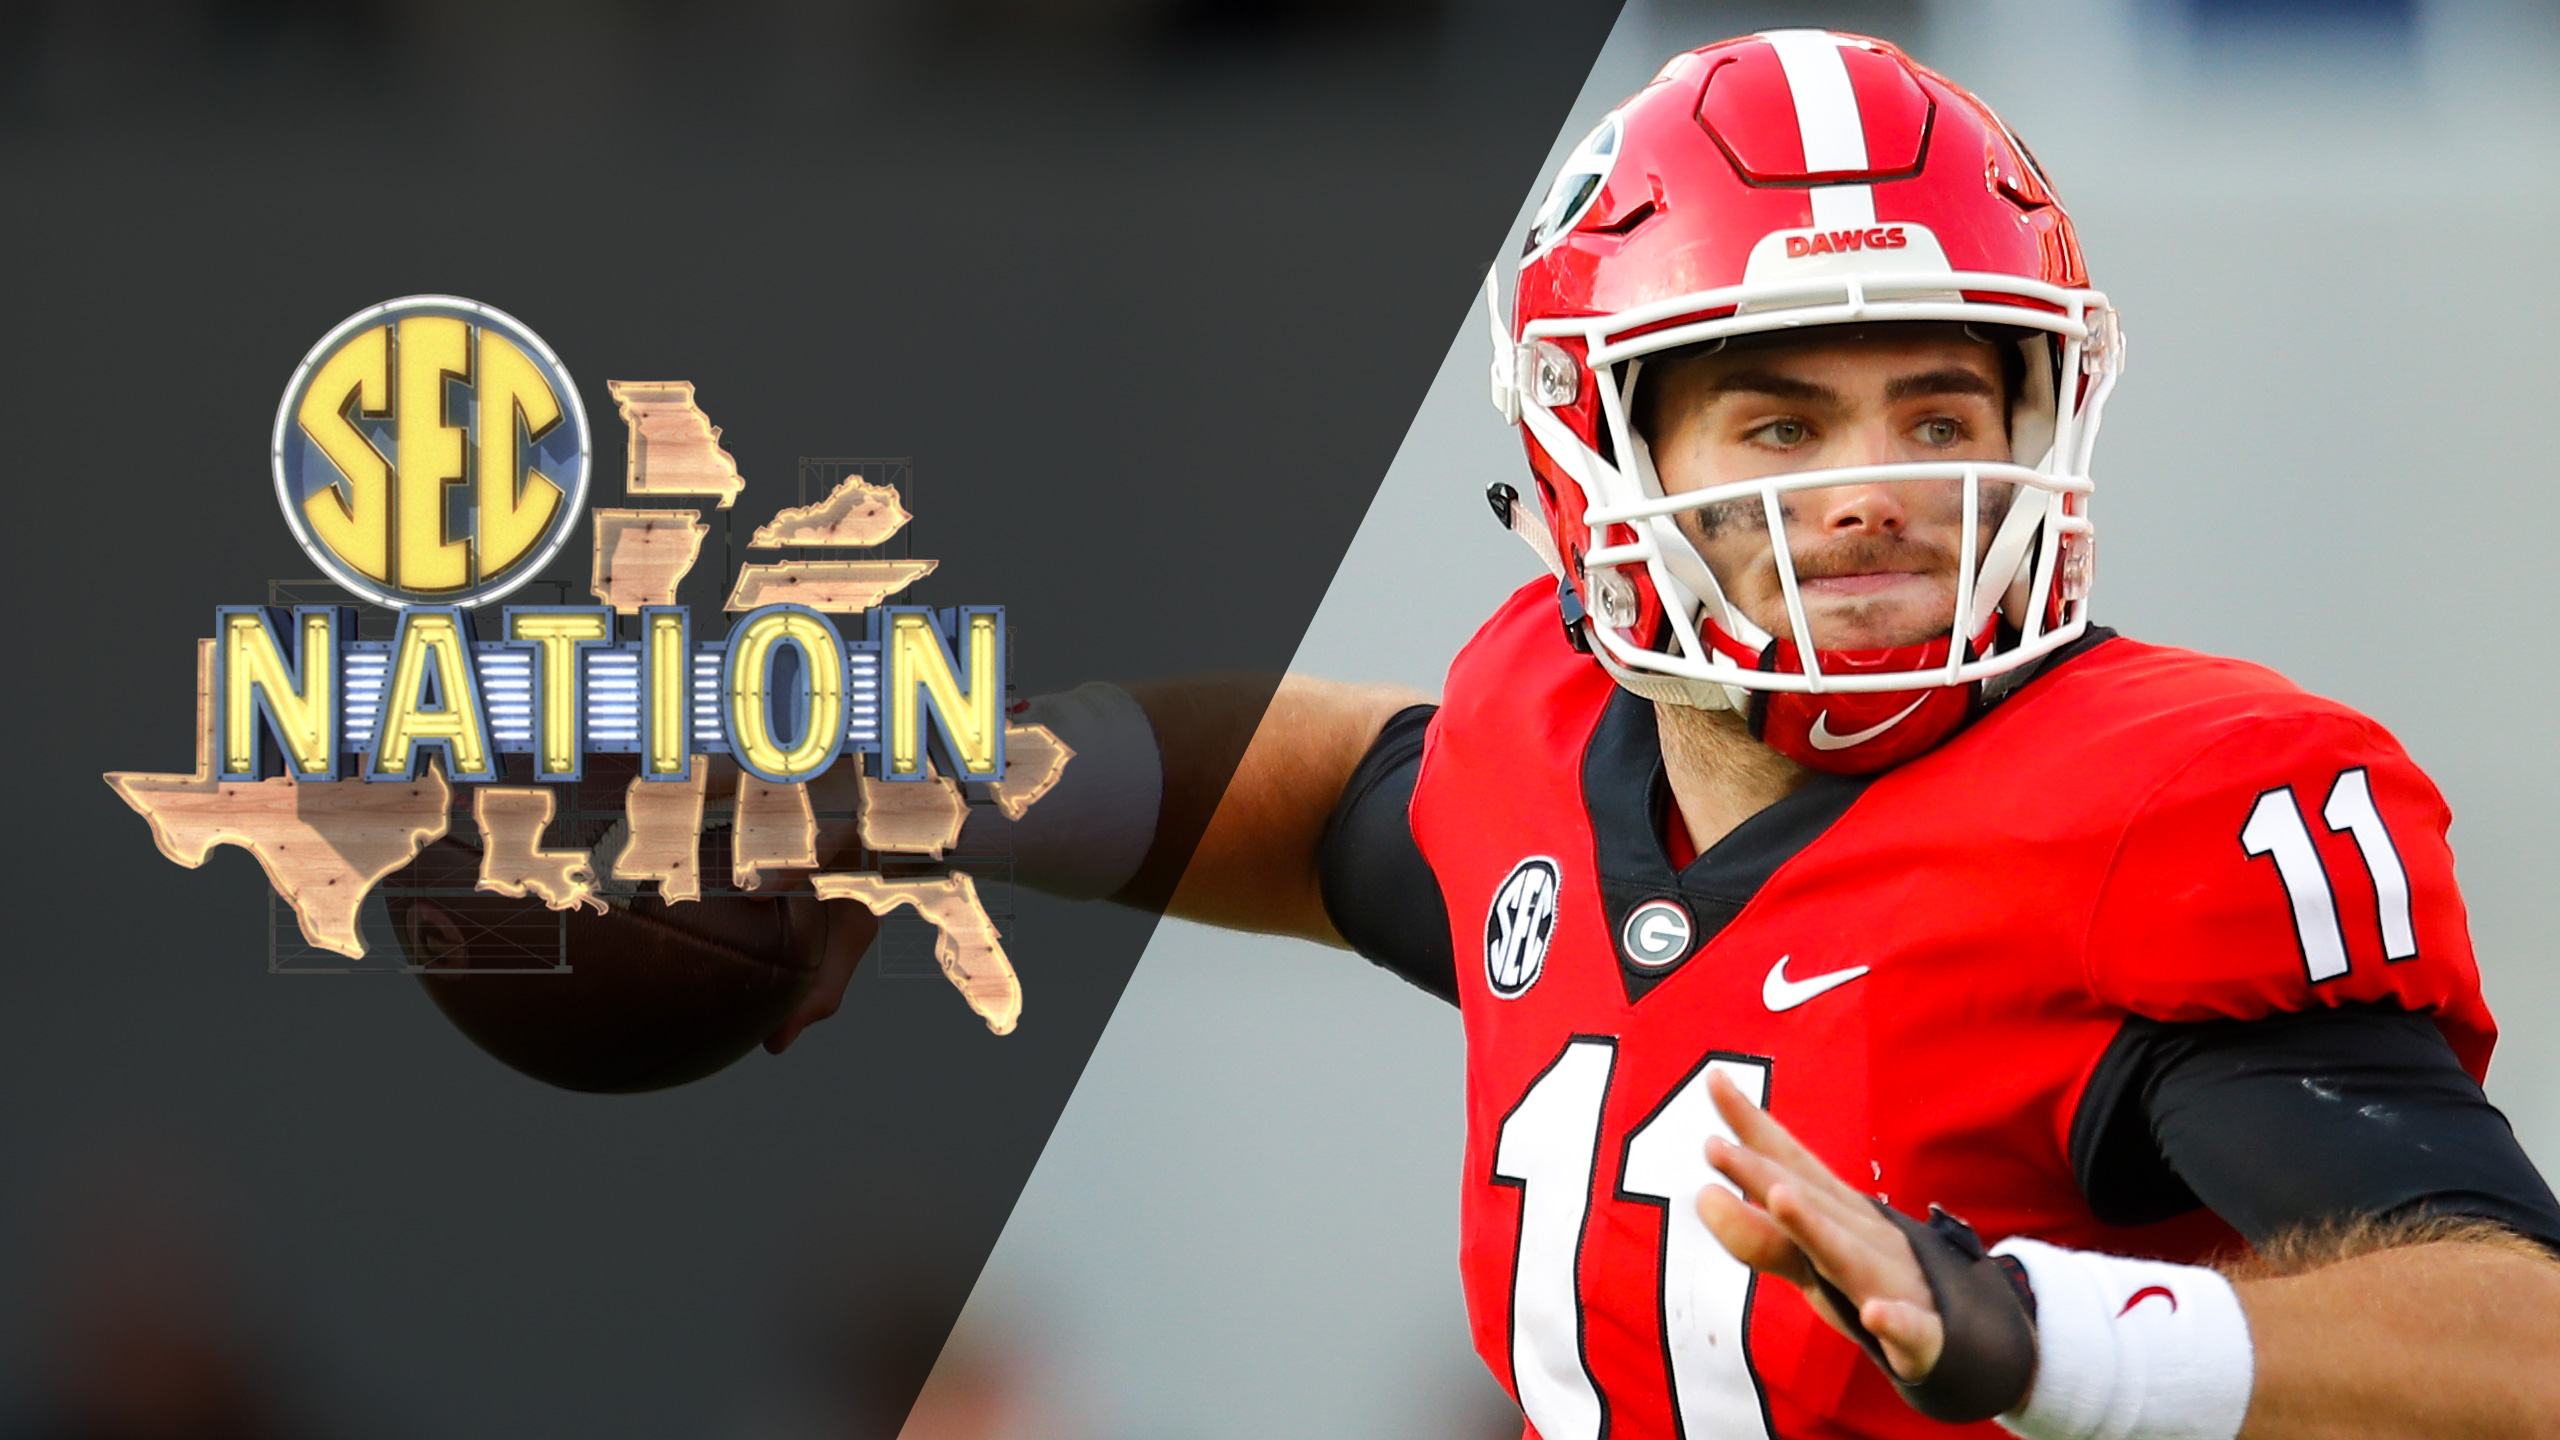 Sat, 10/13 - SEC Nation Presented by Regions Bank